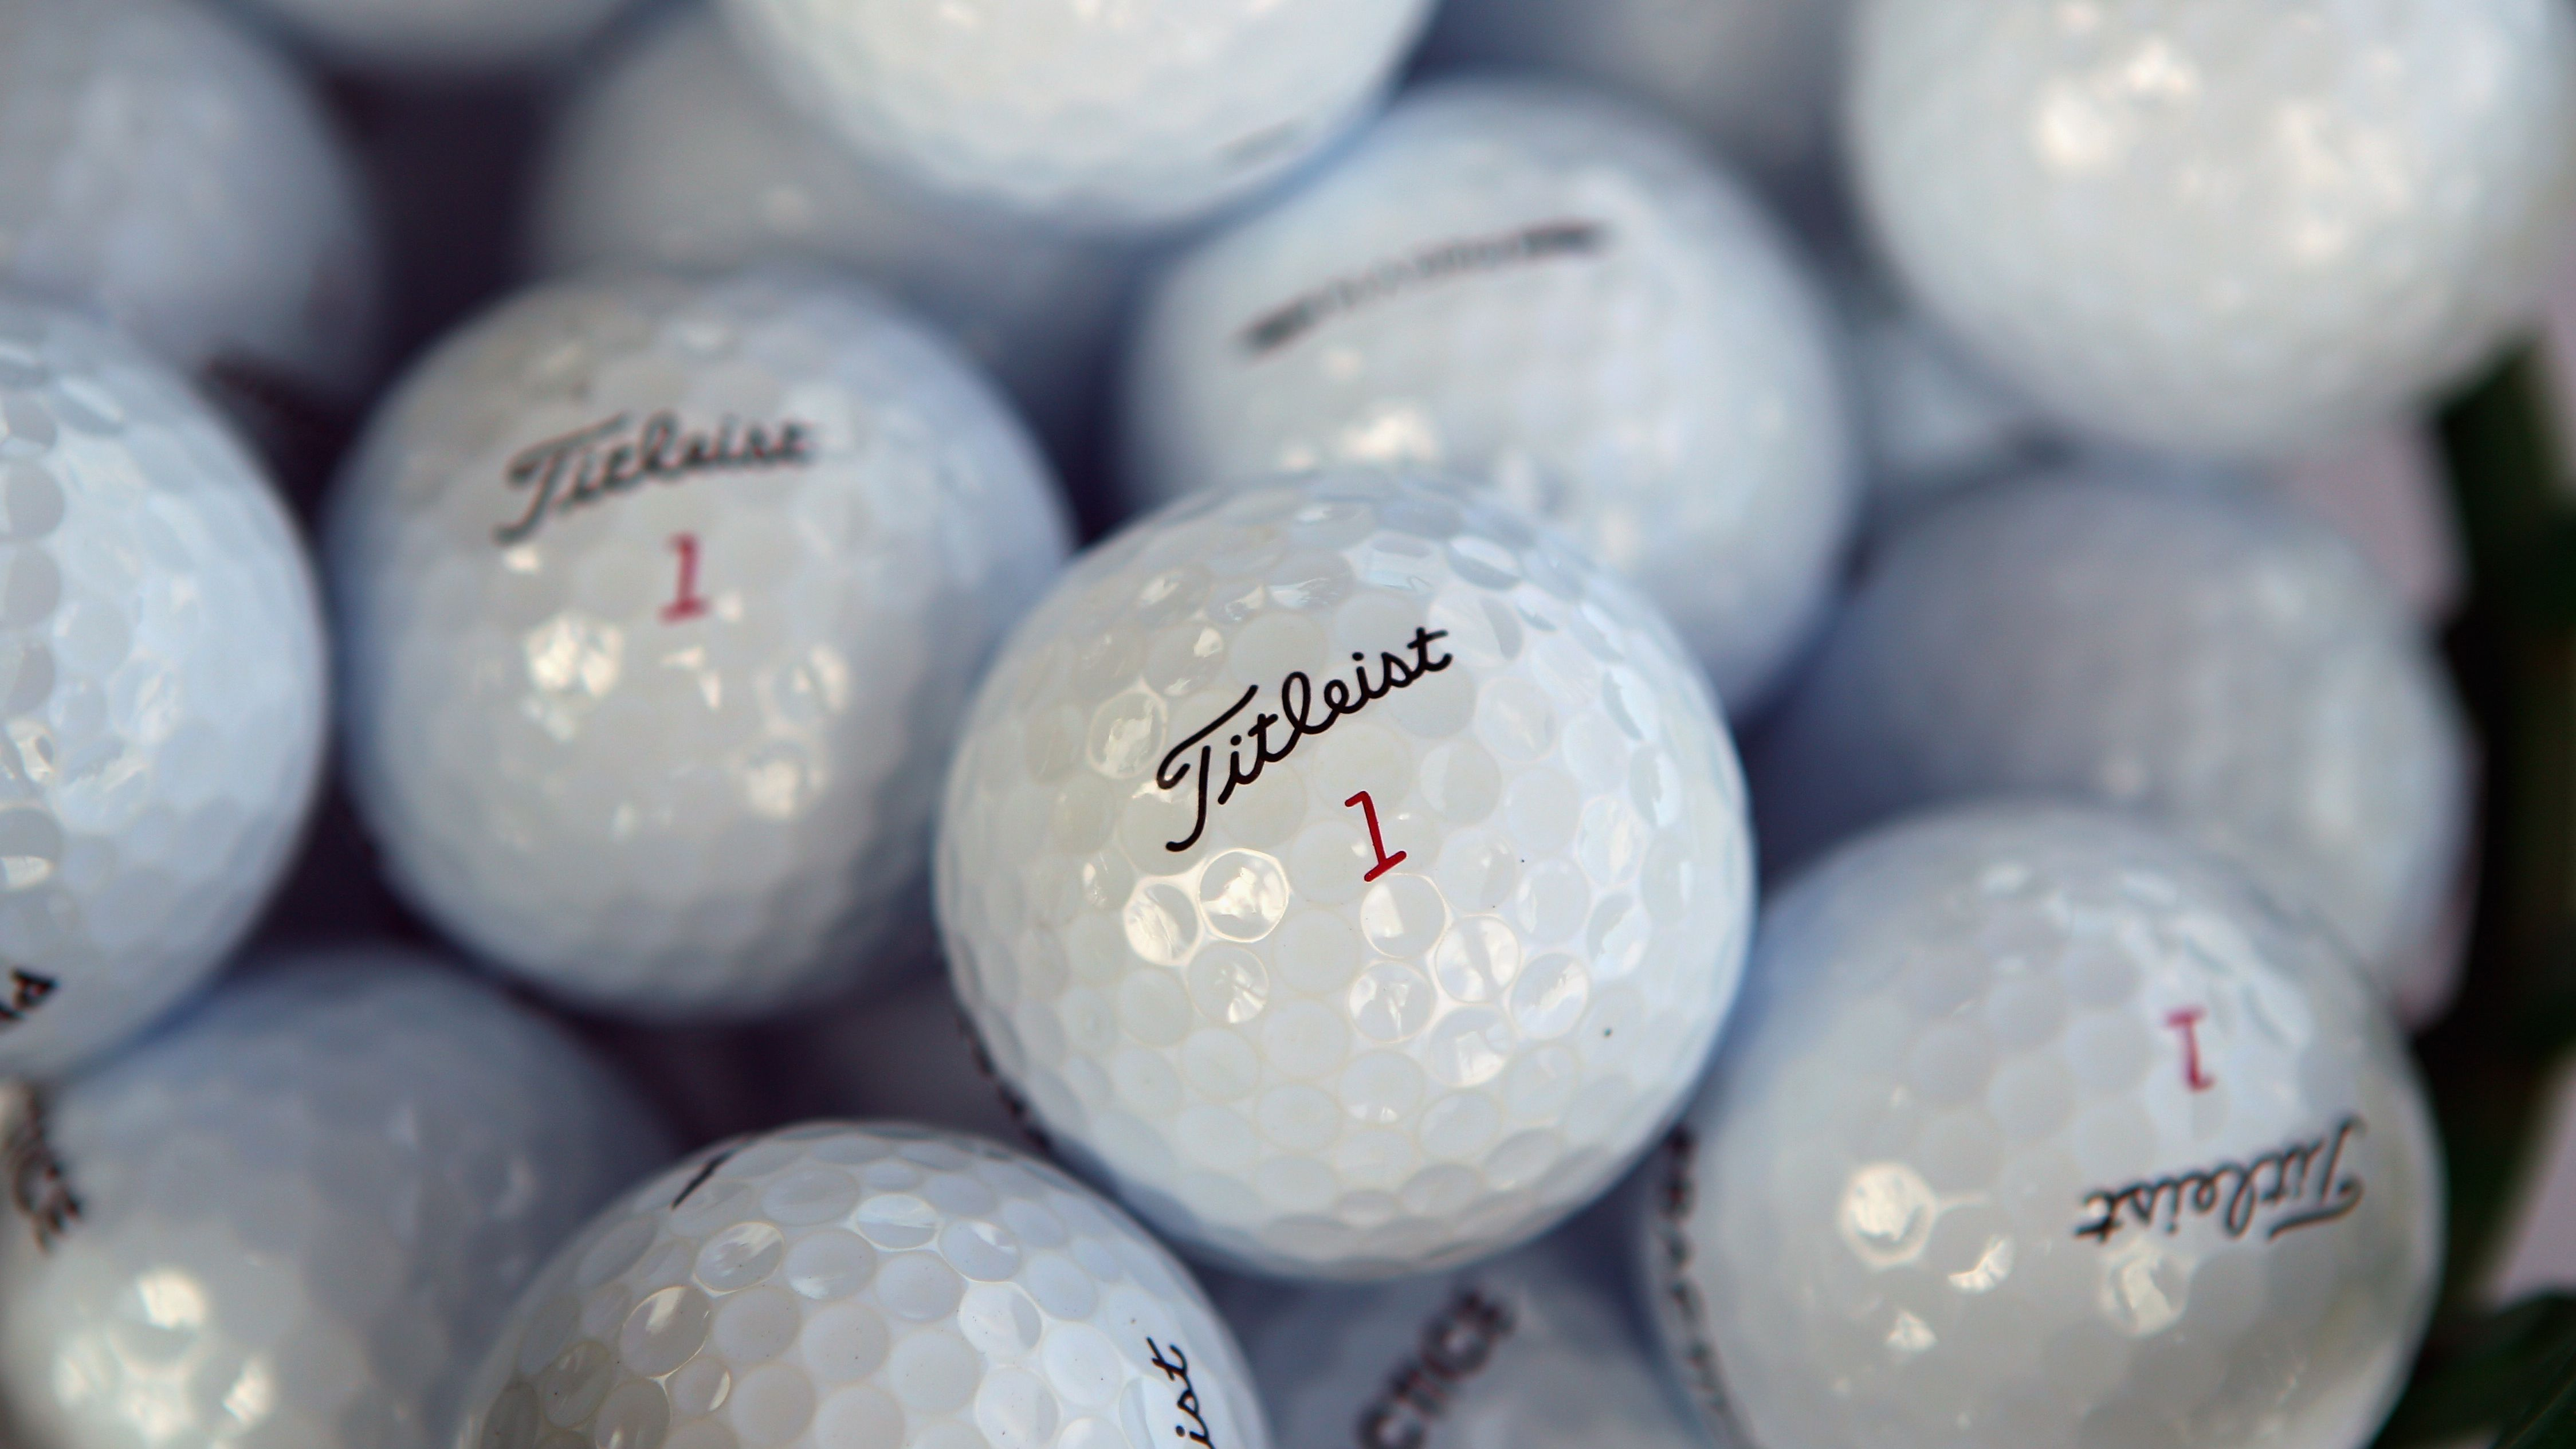 5b74532c5fb2 What Do the Numbers on a Golf Ball Mean